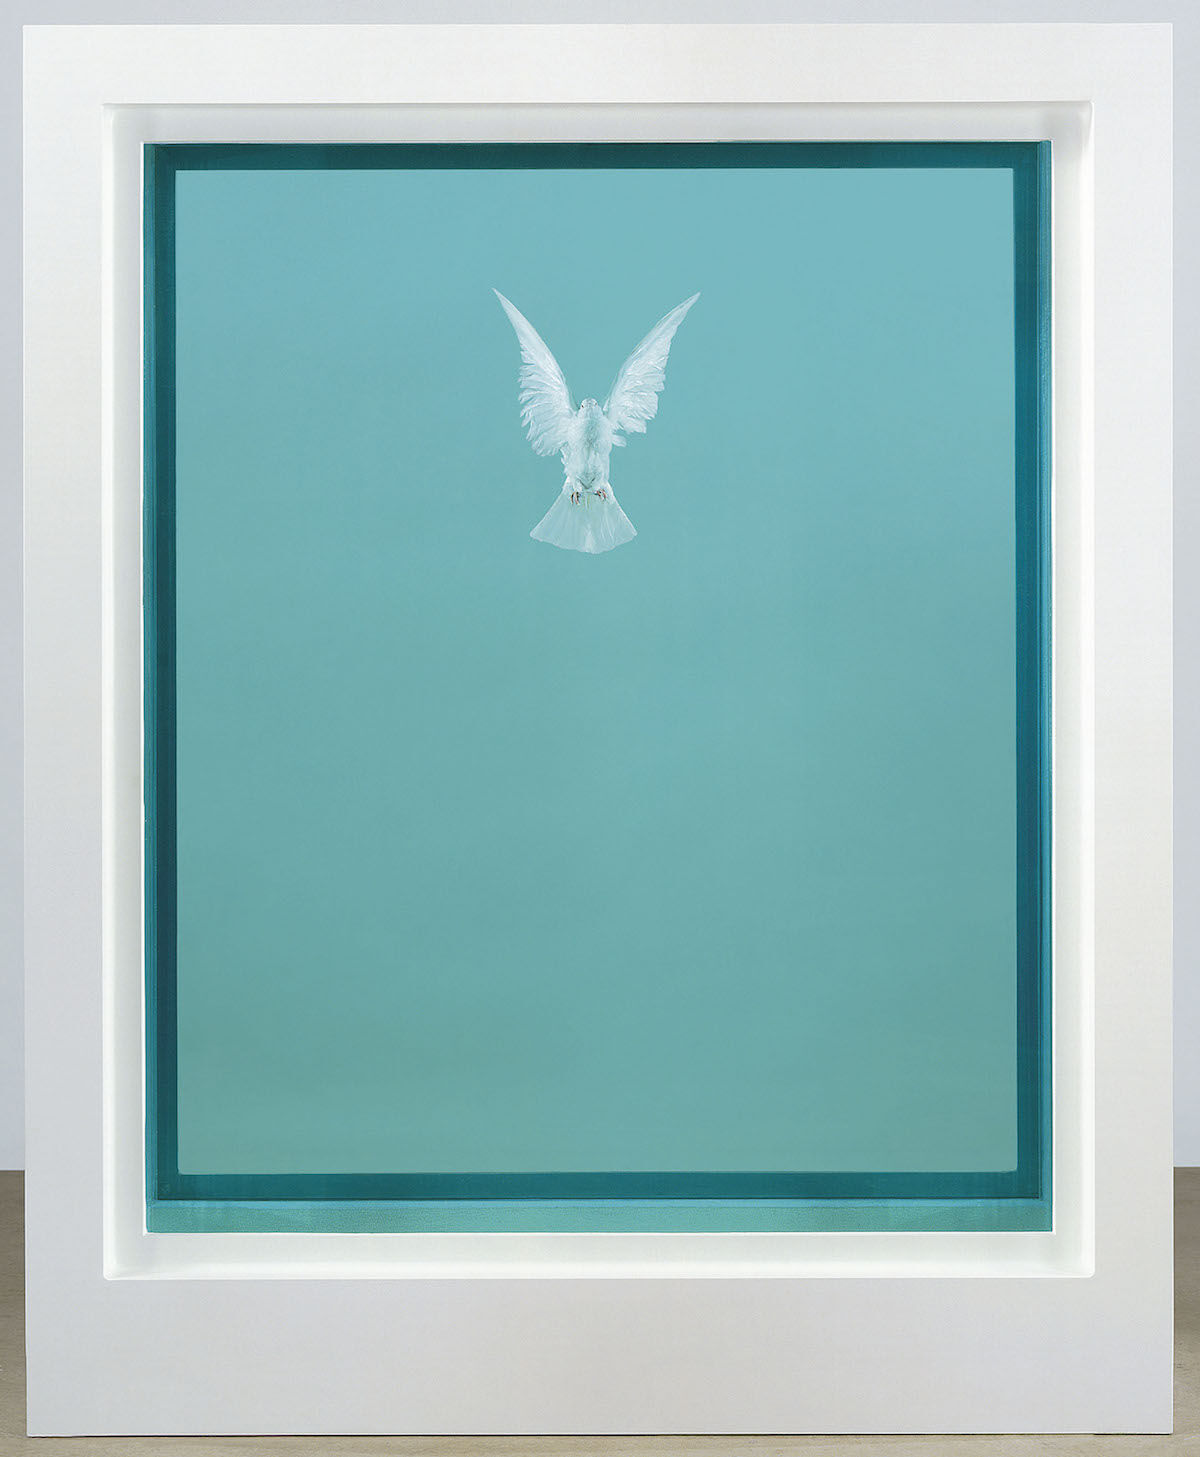 Damien Hirst, The Incomplete Truth, 2006. Sold for £911,250. Courtesy Christie's Images Limited 2019.